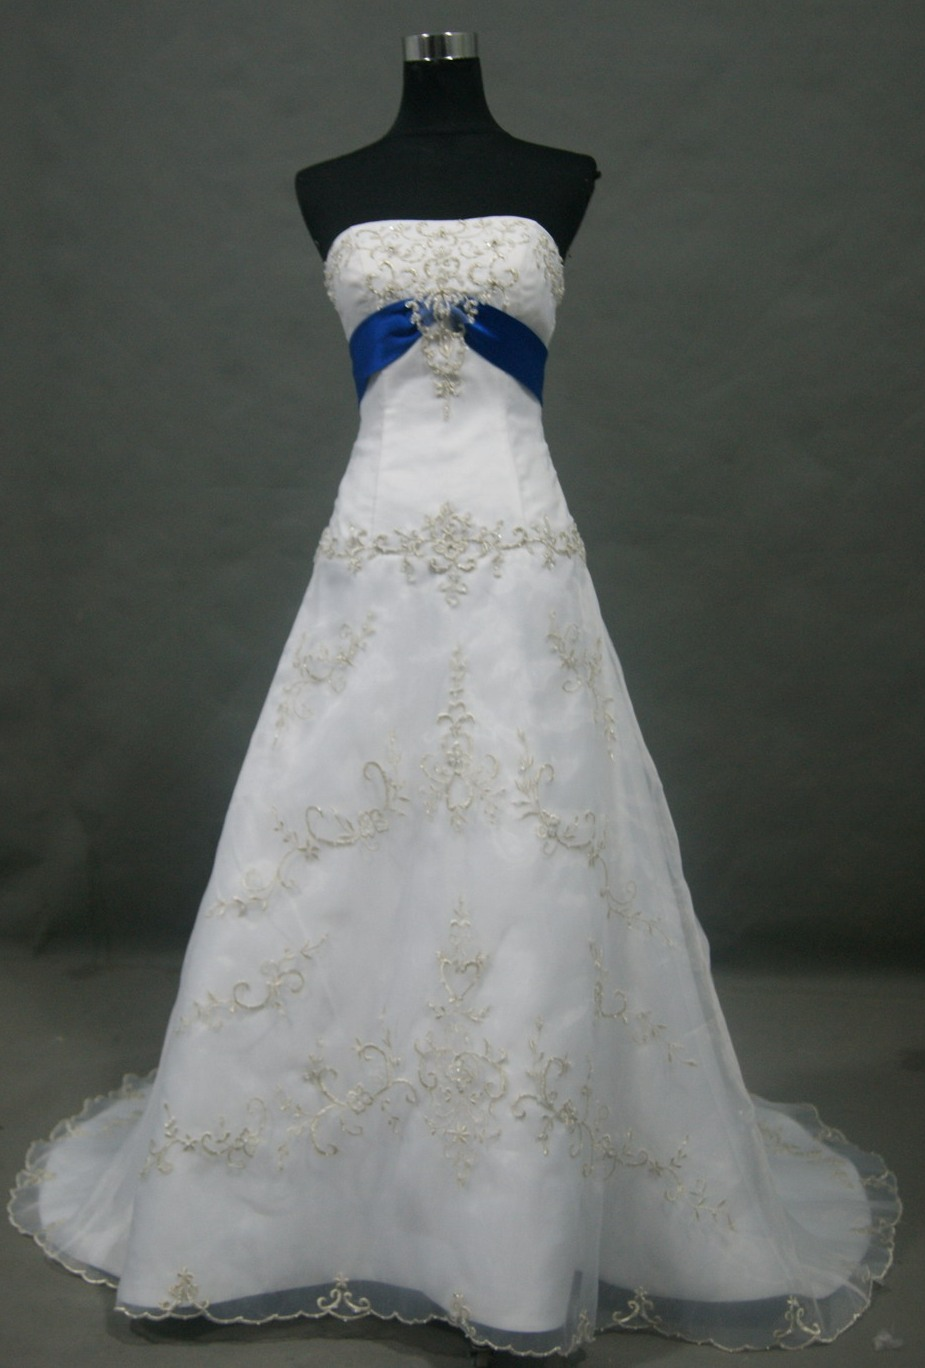 Aimee 52 wedding gown viking wedding dress white and blue wedding gown